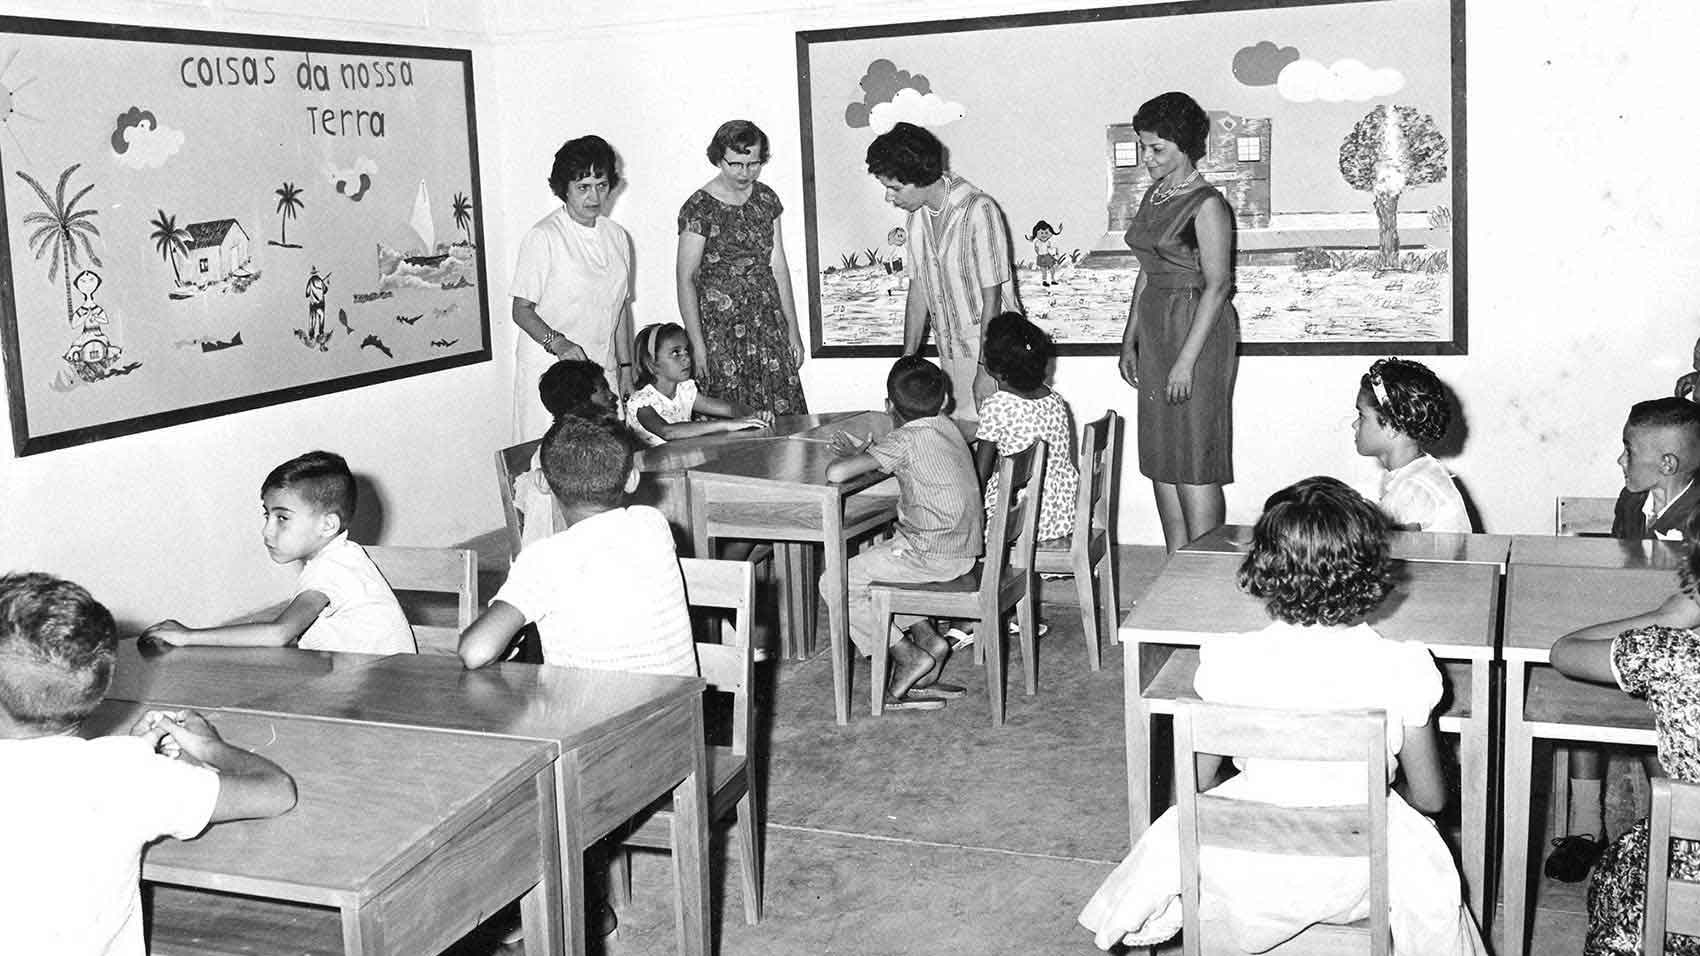 Escola Johnson around the time it was established in the 1960s